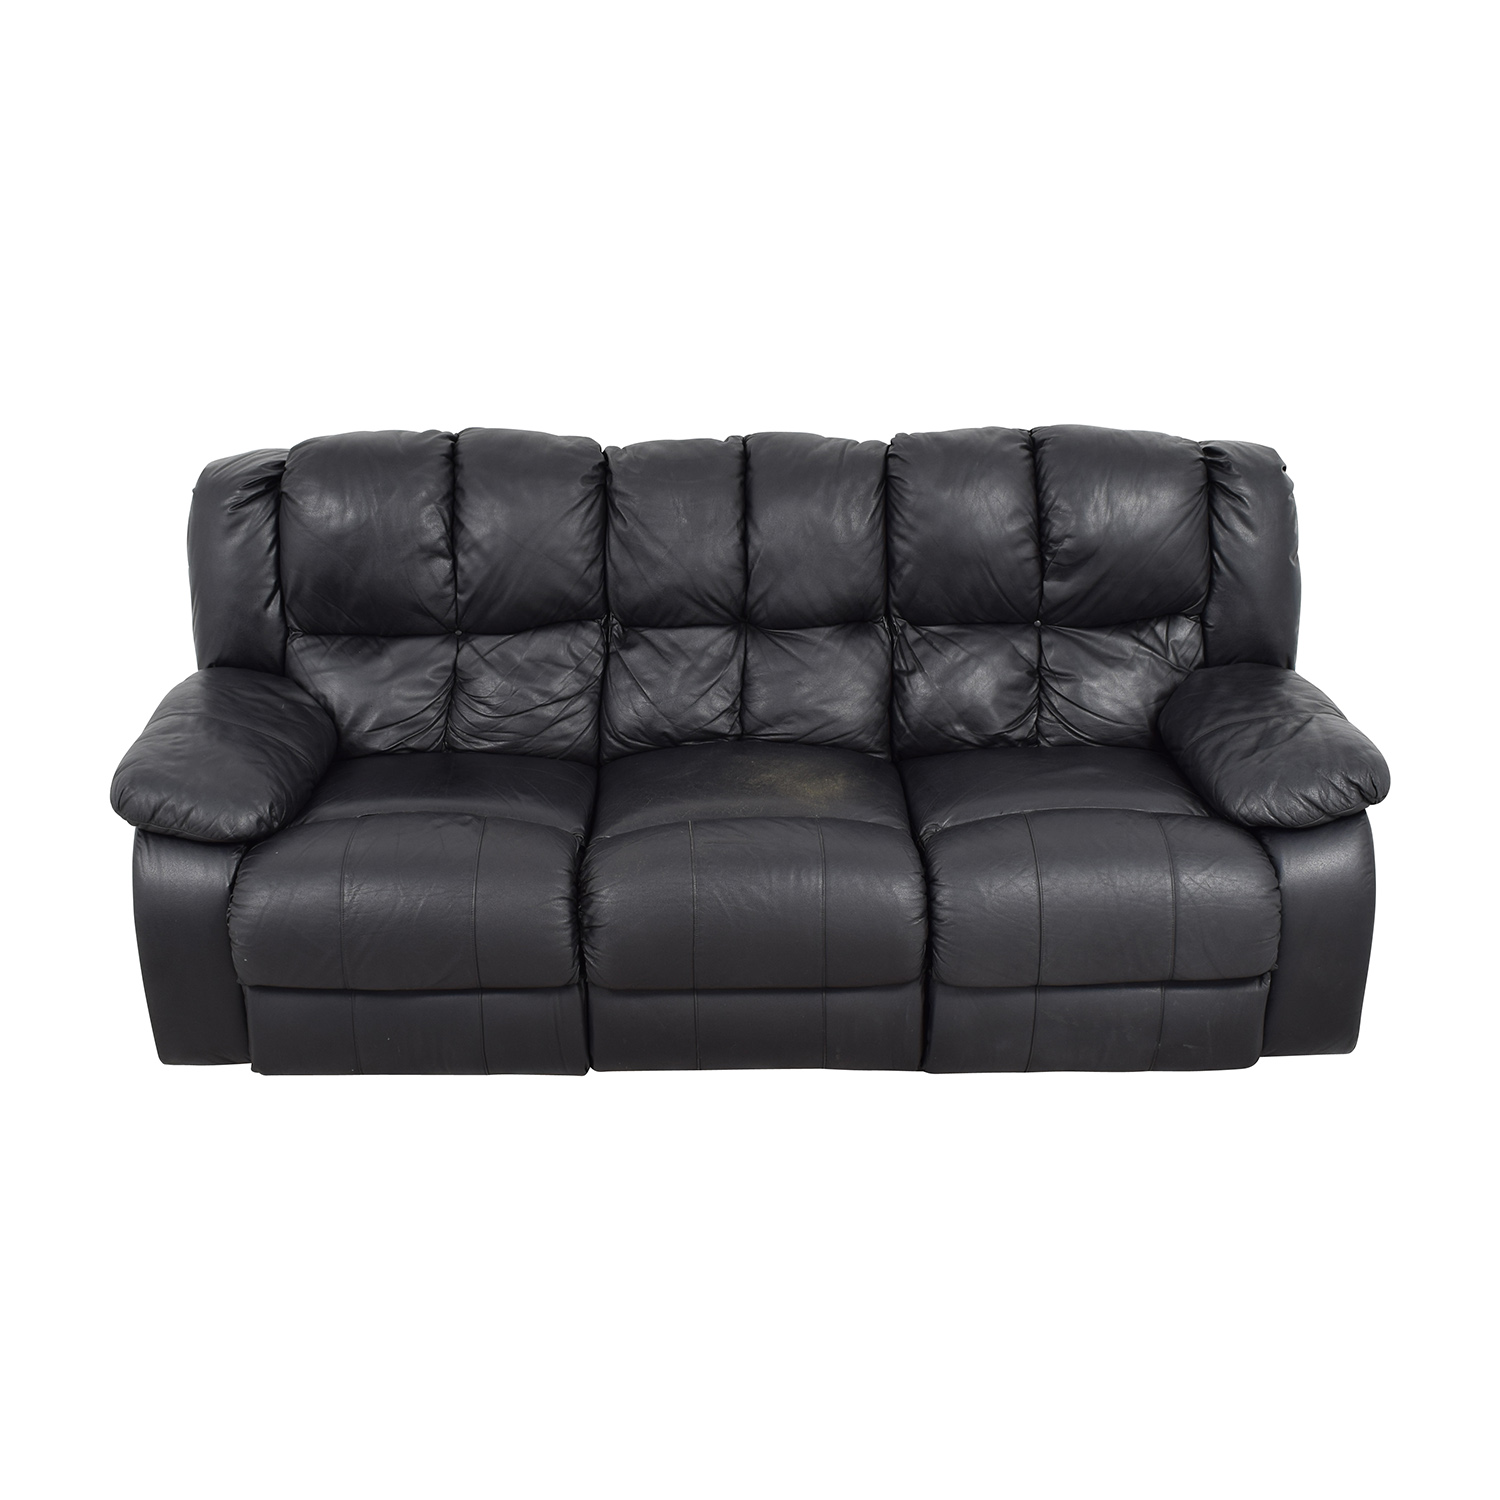 Raymour and Flanigan Raymour & Flanigan Three-Seat Leather Sofa Sofas